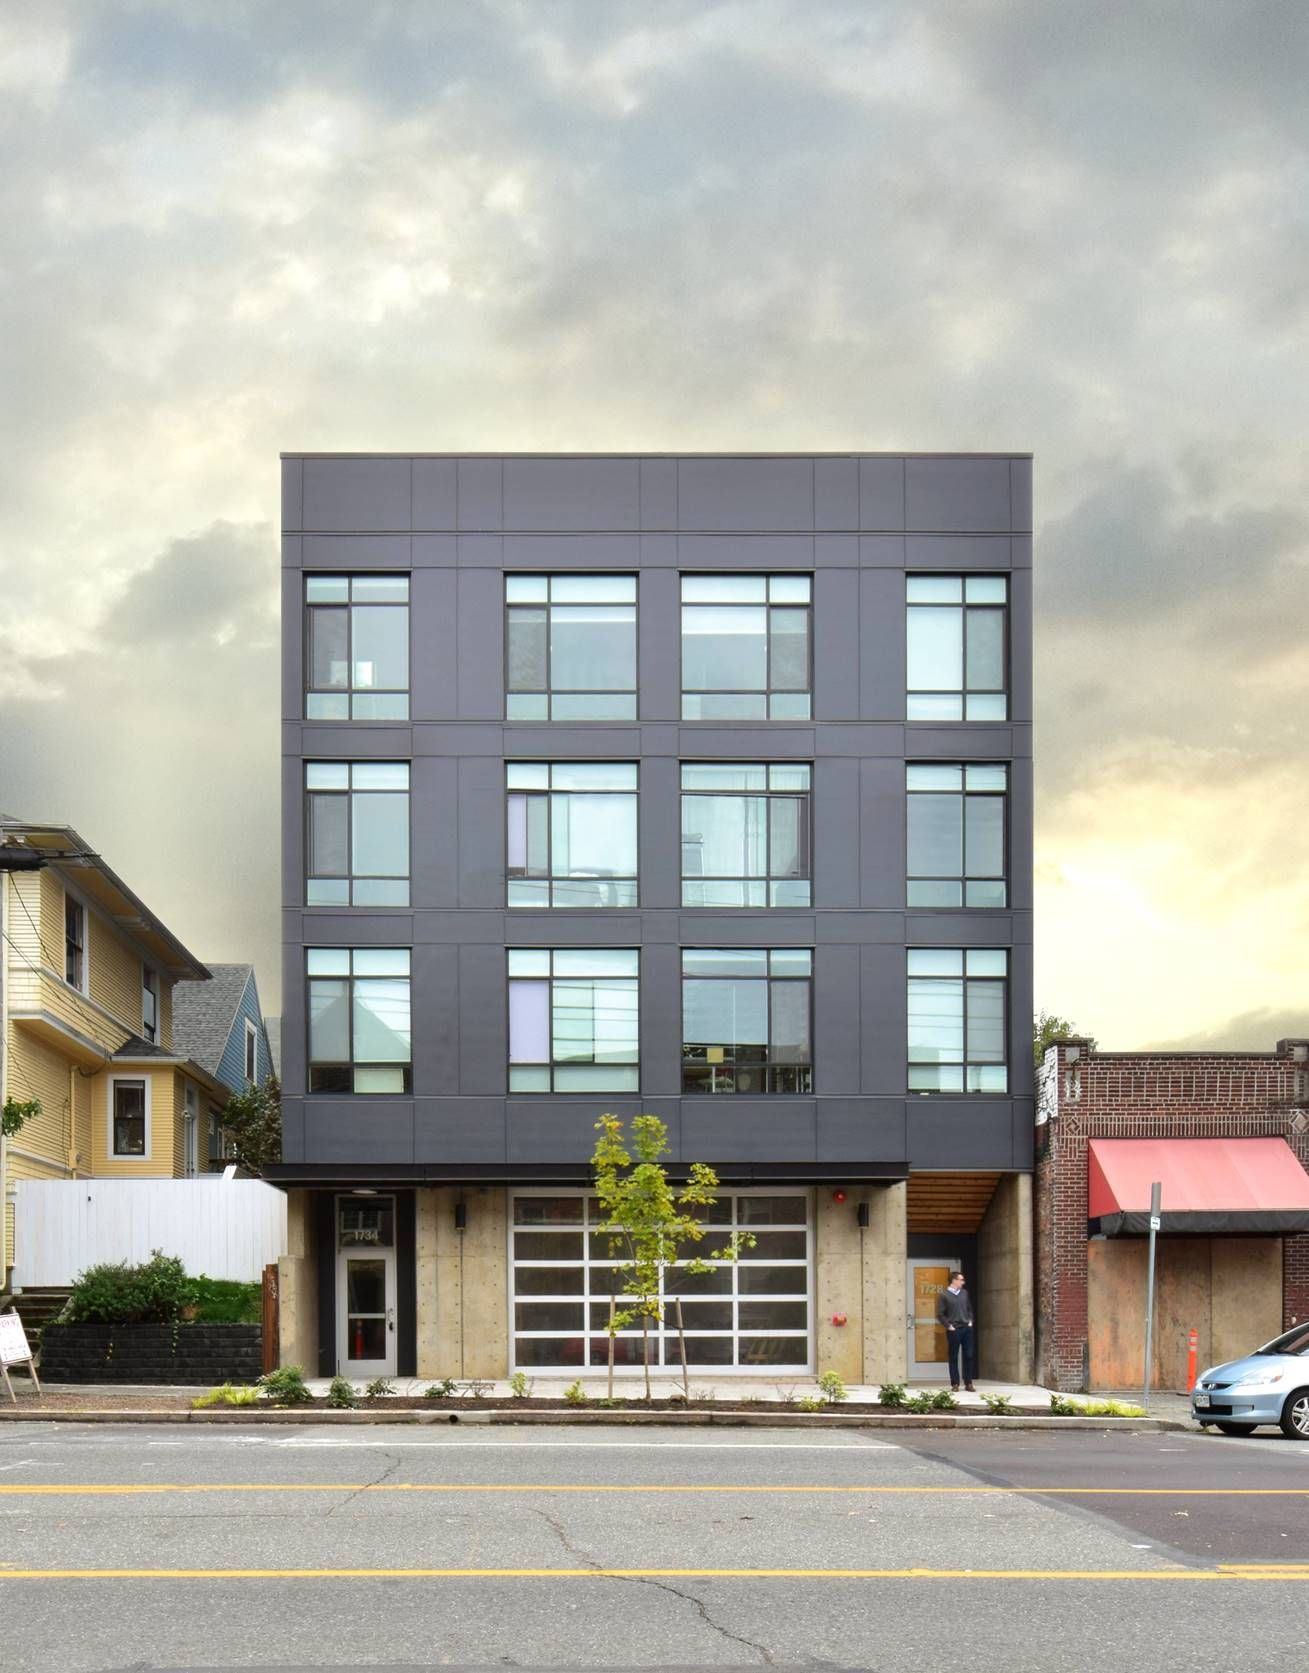 Mixed Use Apartments Architecture Google Search Apartment Architecture Architecture Micro Apartment